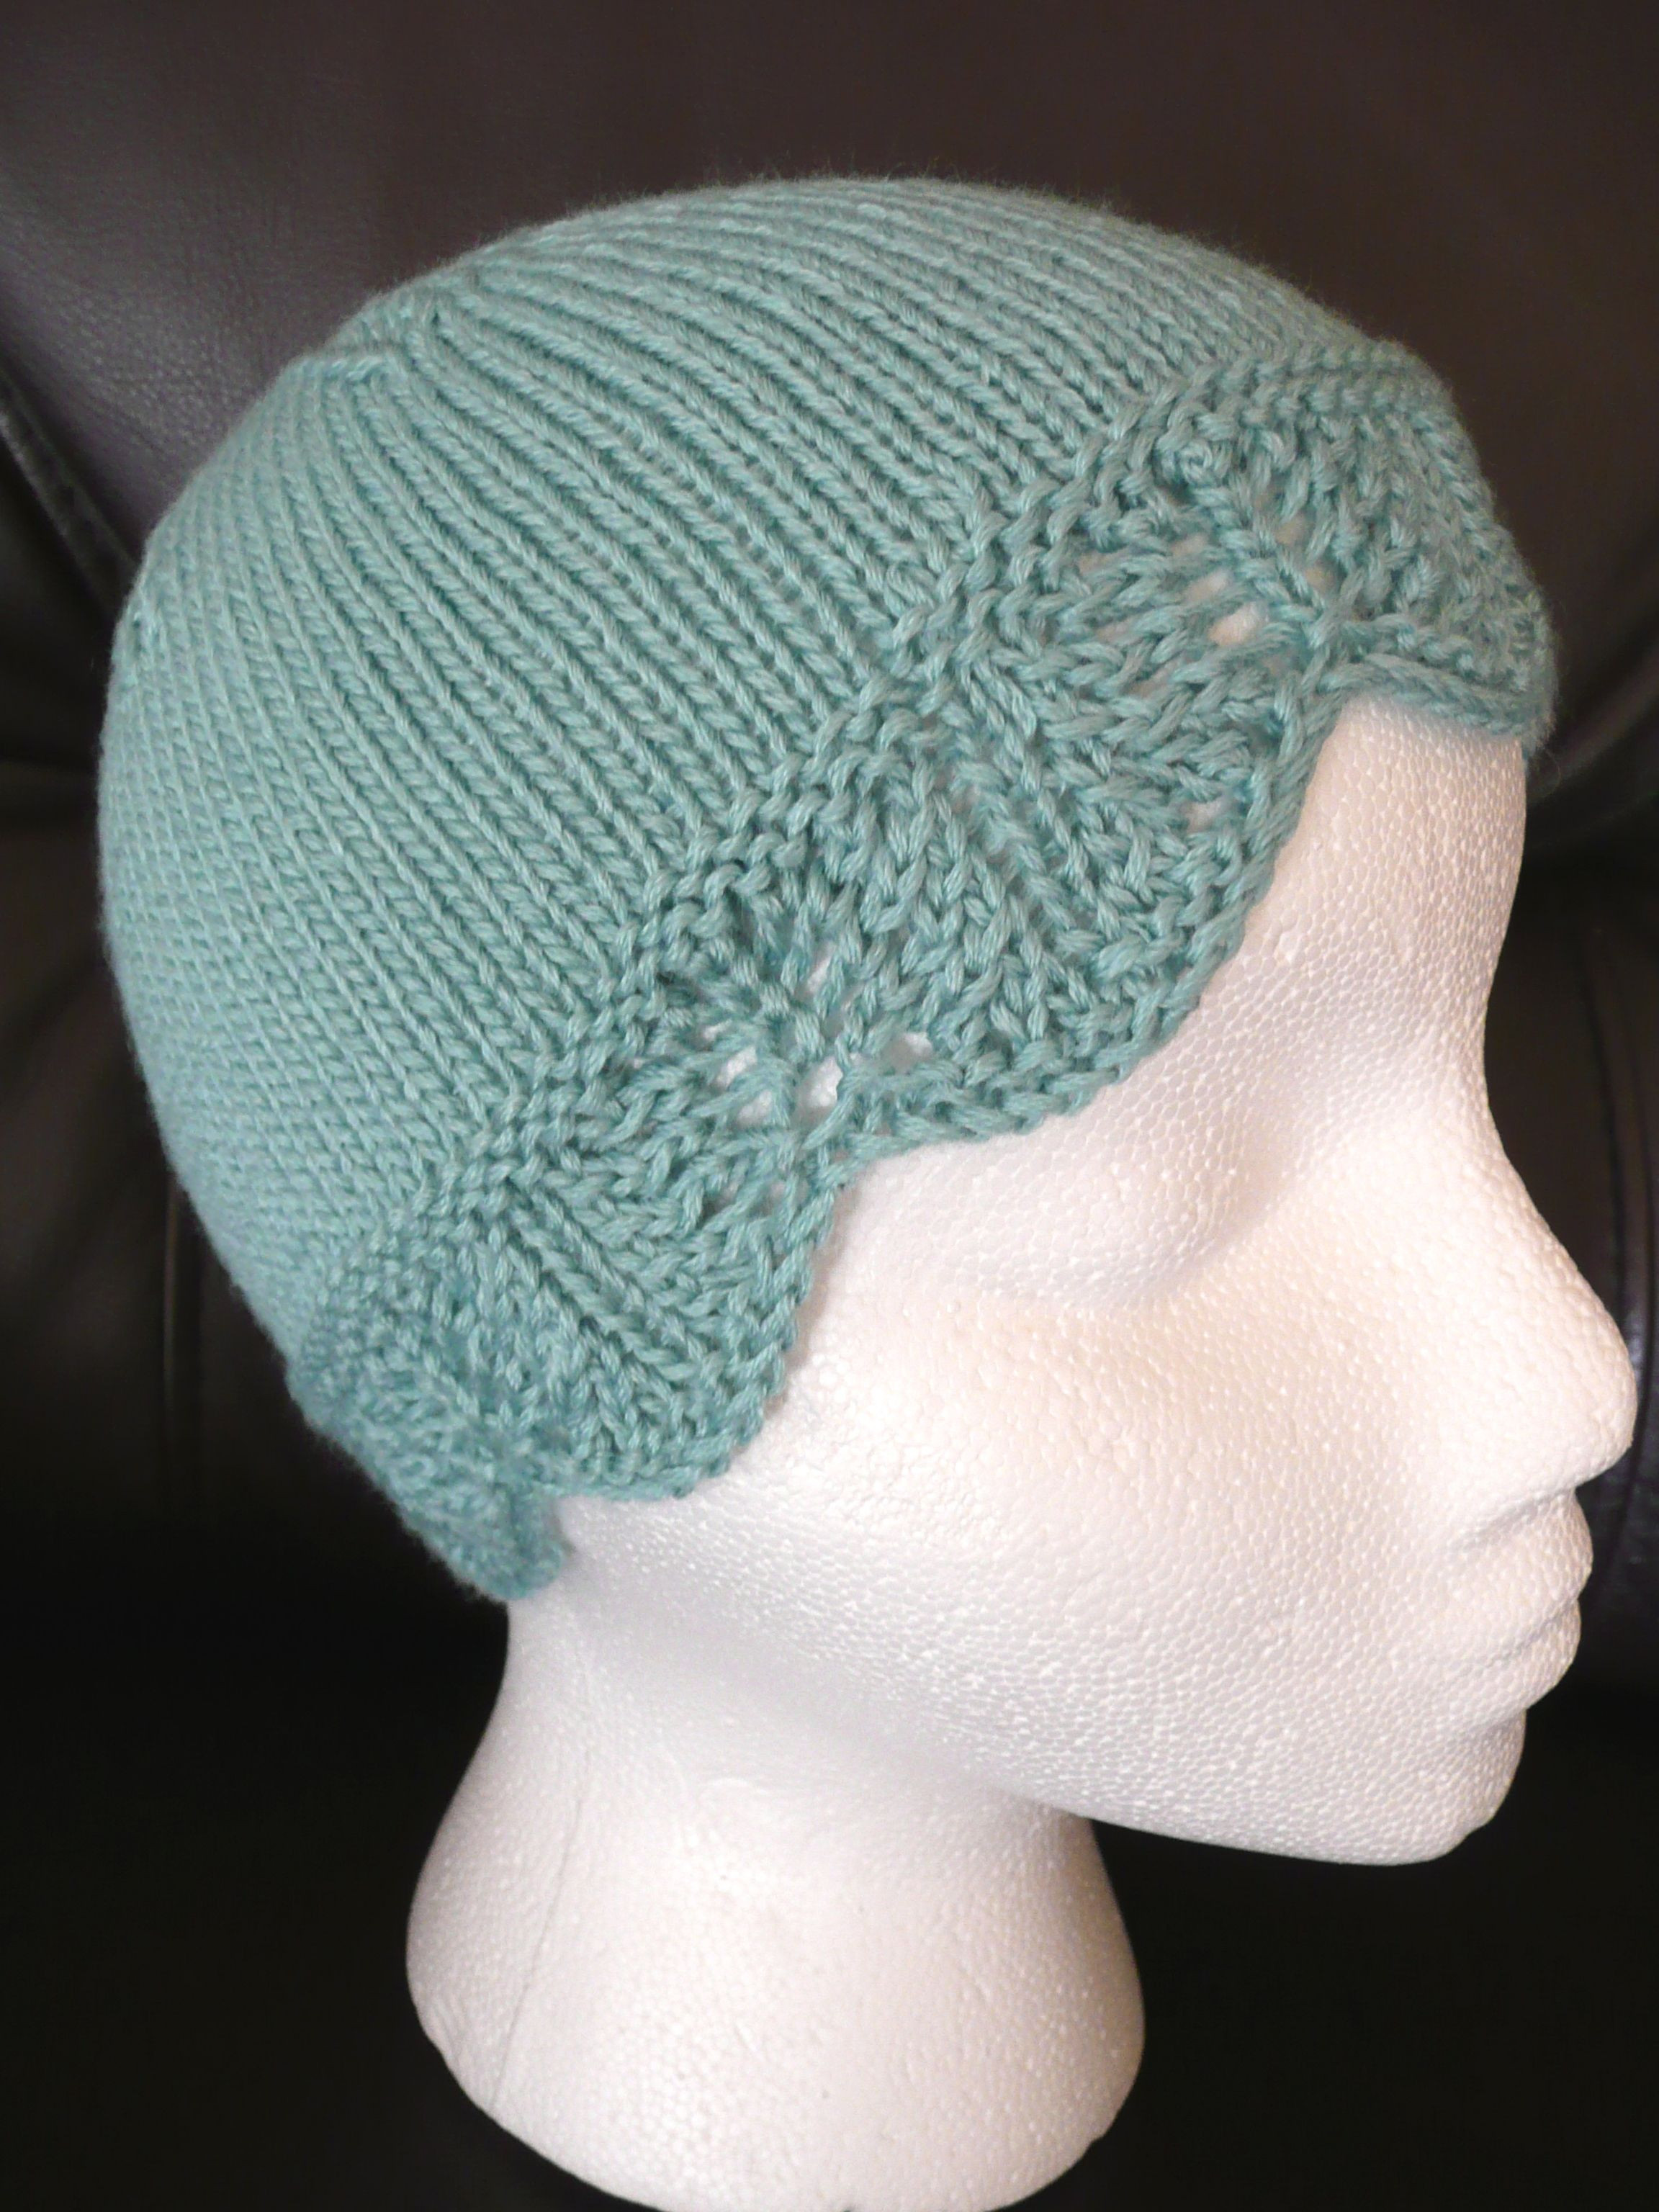 Chemo Cap Pattern Inspirational Free Crochet Chemo Hat Patterns Of Adorable 45 Models Chemo Cap Pattern